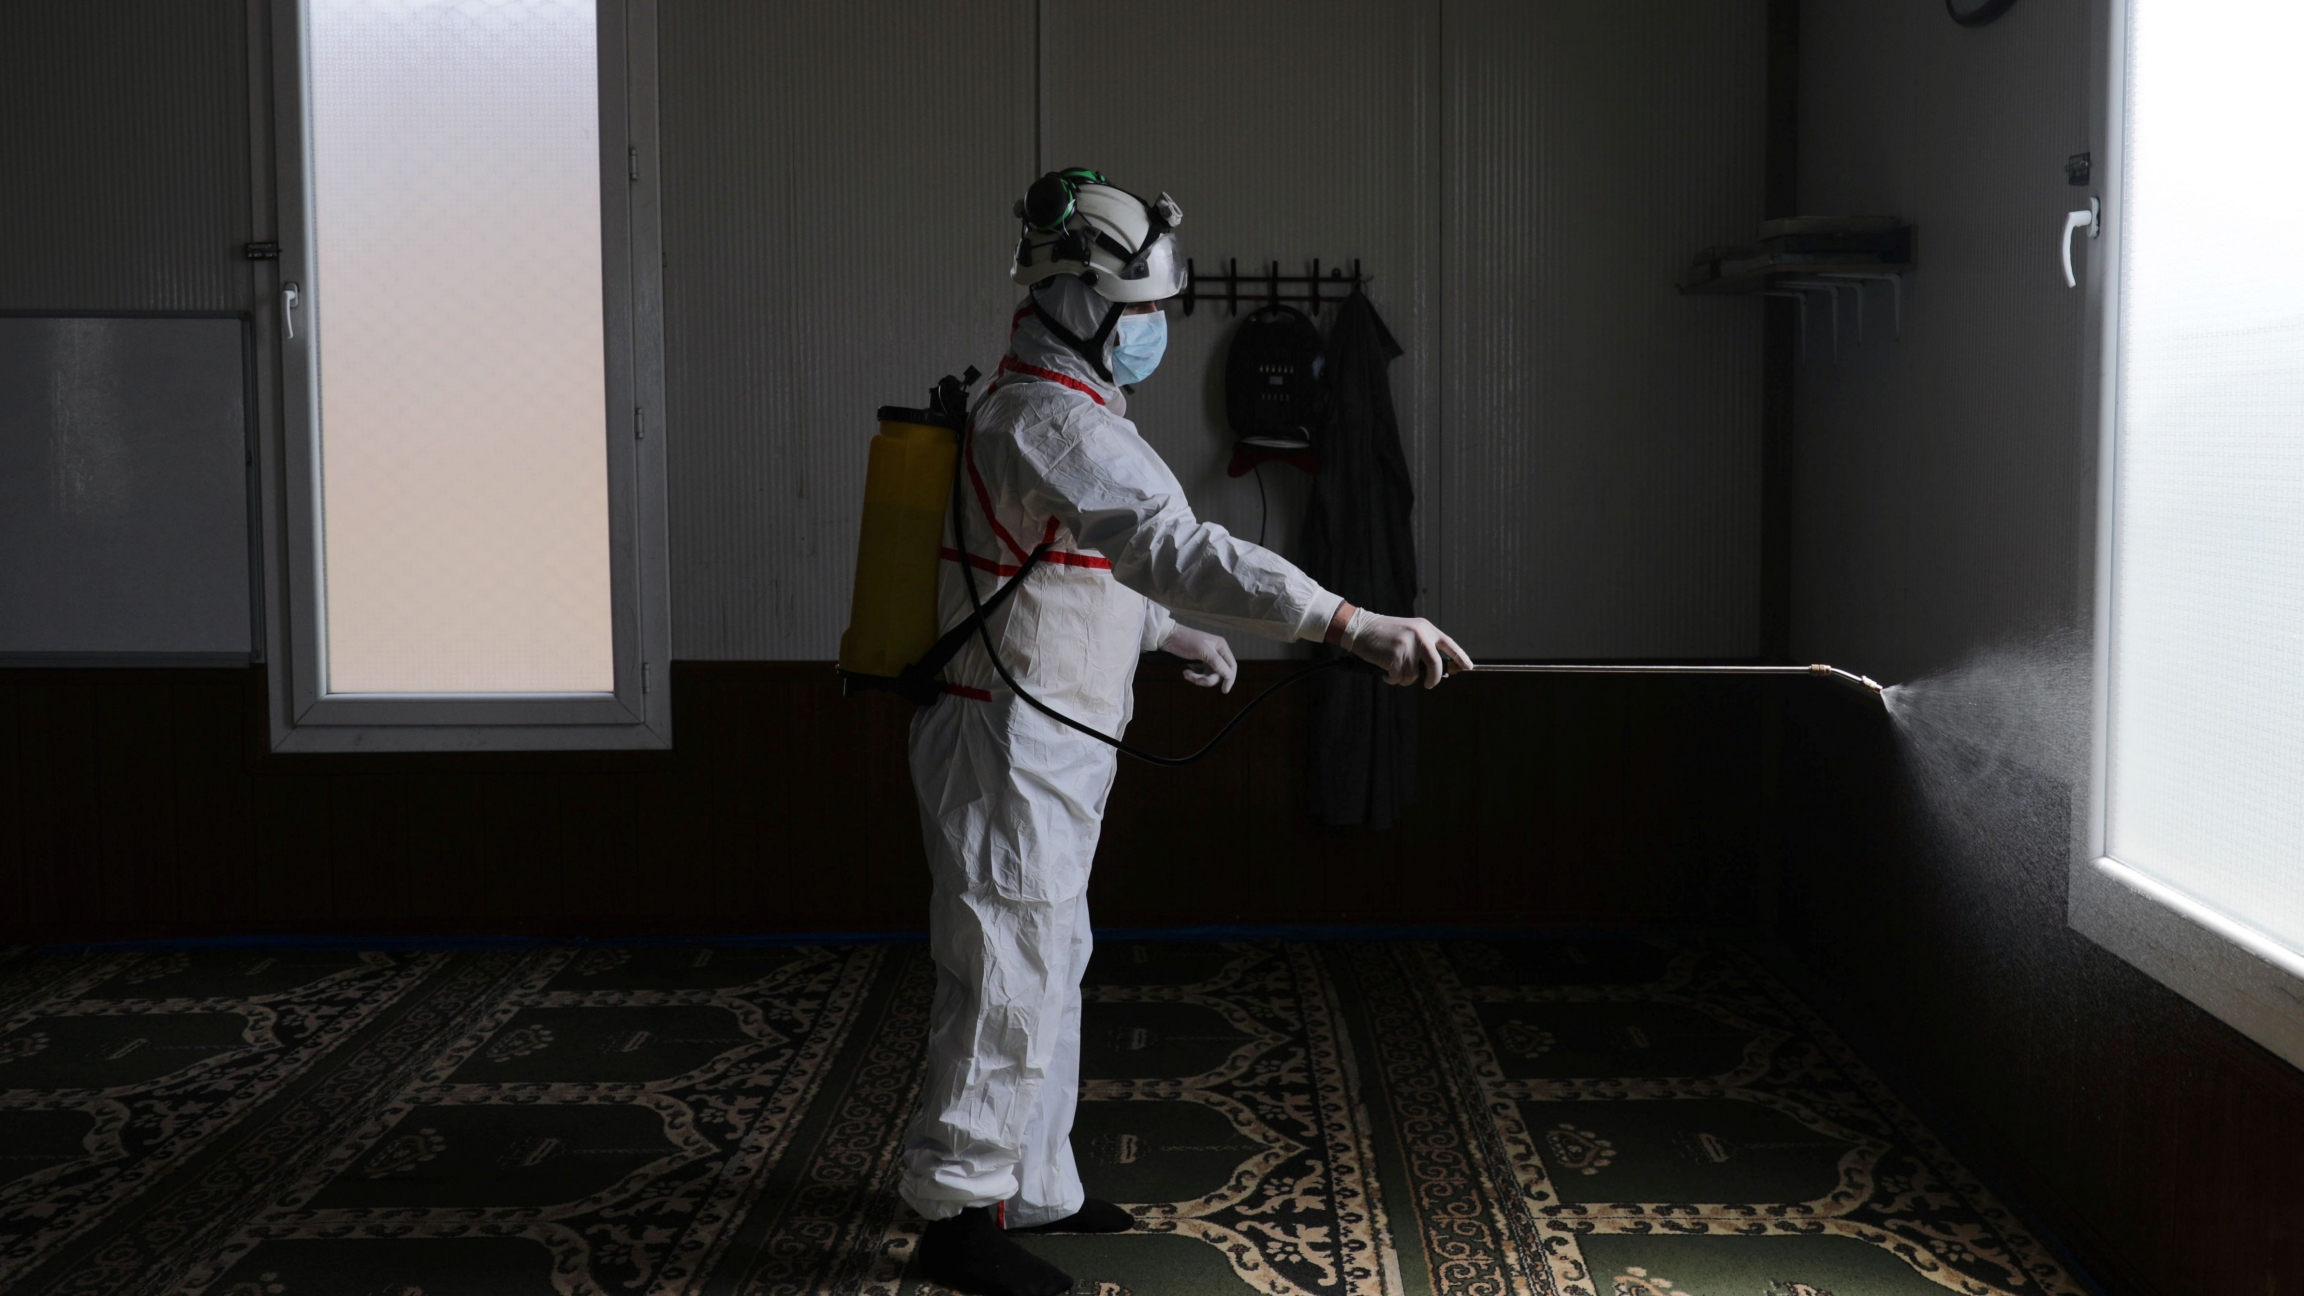 A member of the Syrian Civil Defense sanitizes inside the mosque at the Bab al-Nour internally displaced persons camp, to prevent the spread of the coronavirus disease (COVID-19) in Azaz, Syria, March 26, 2020.